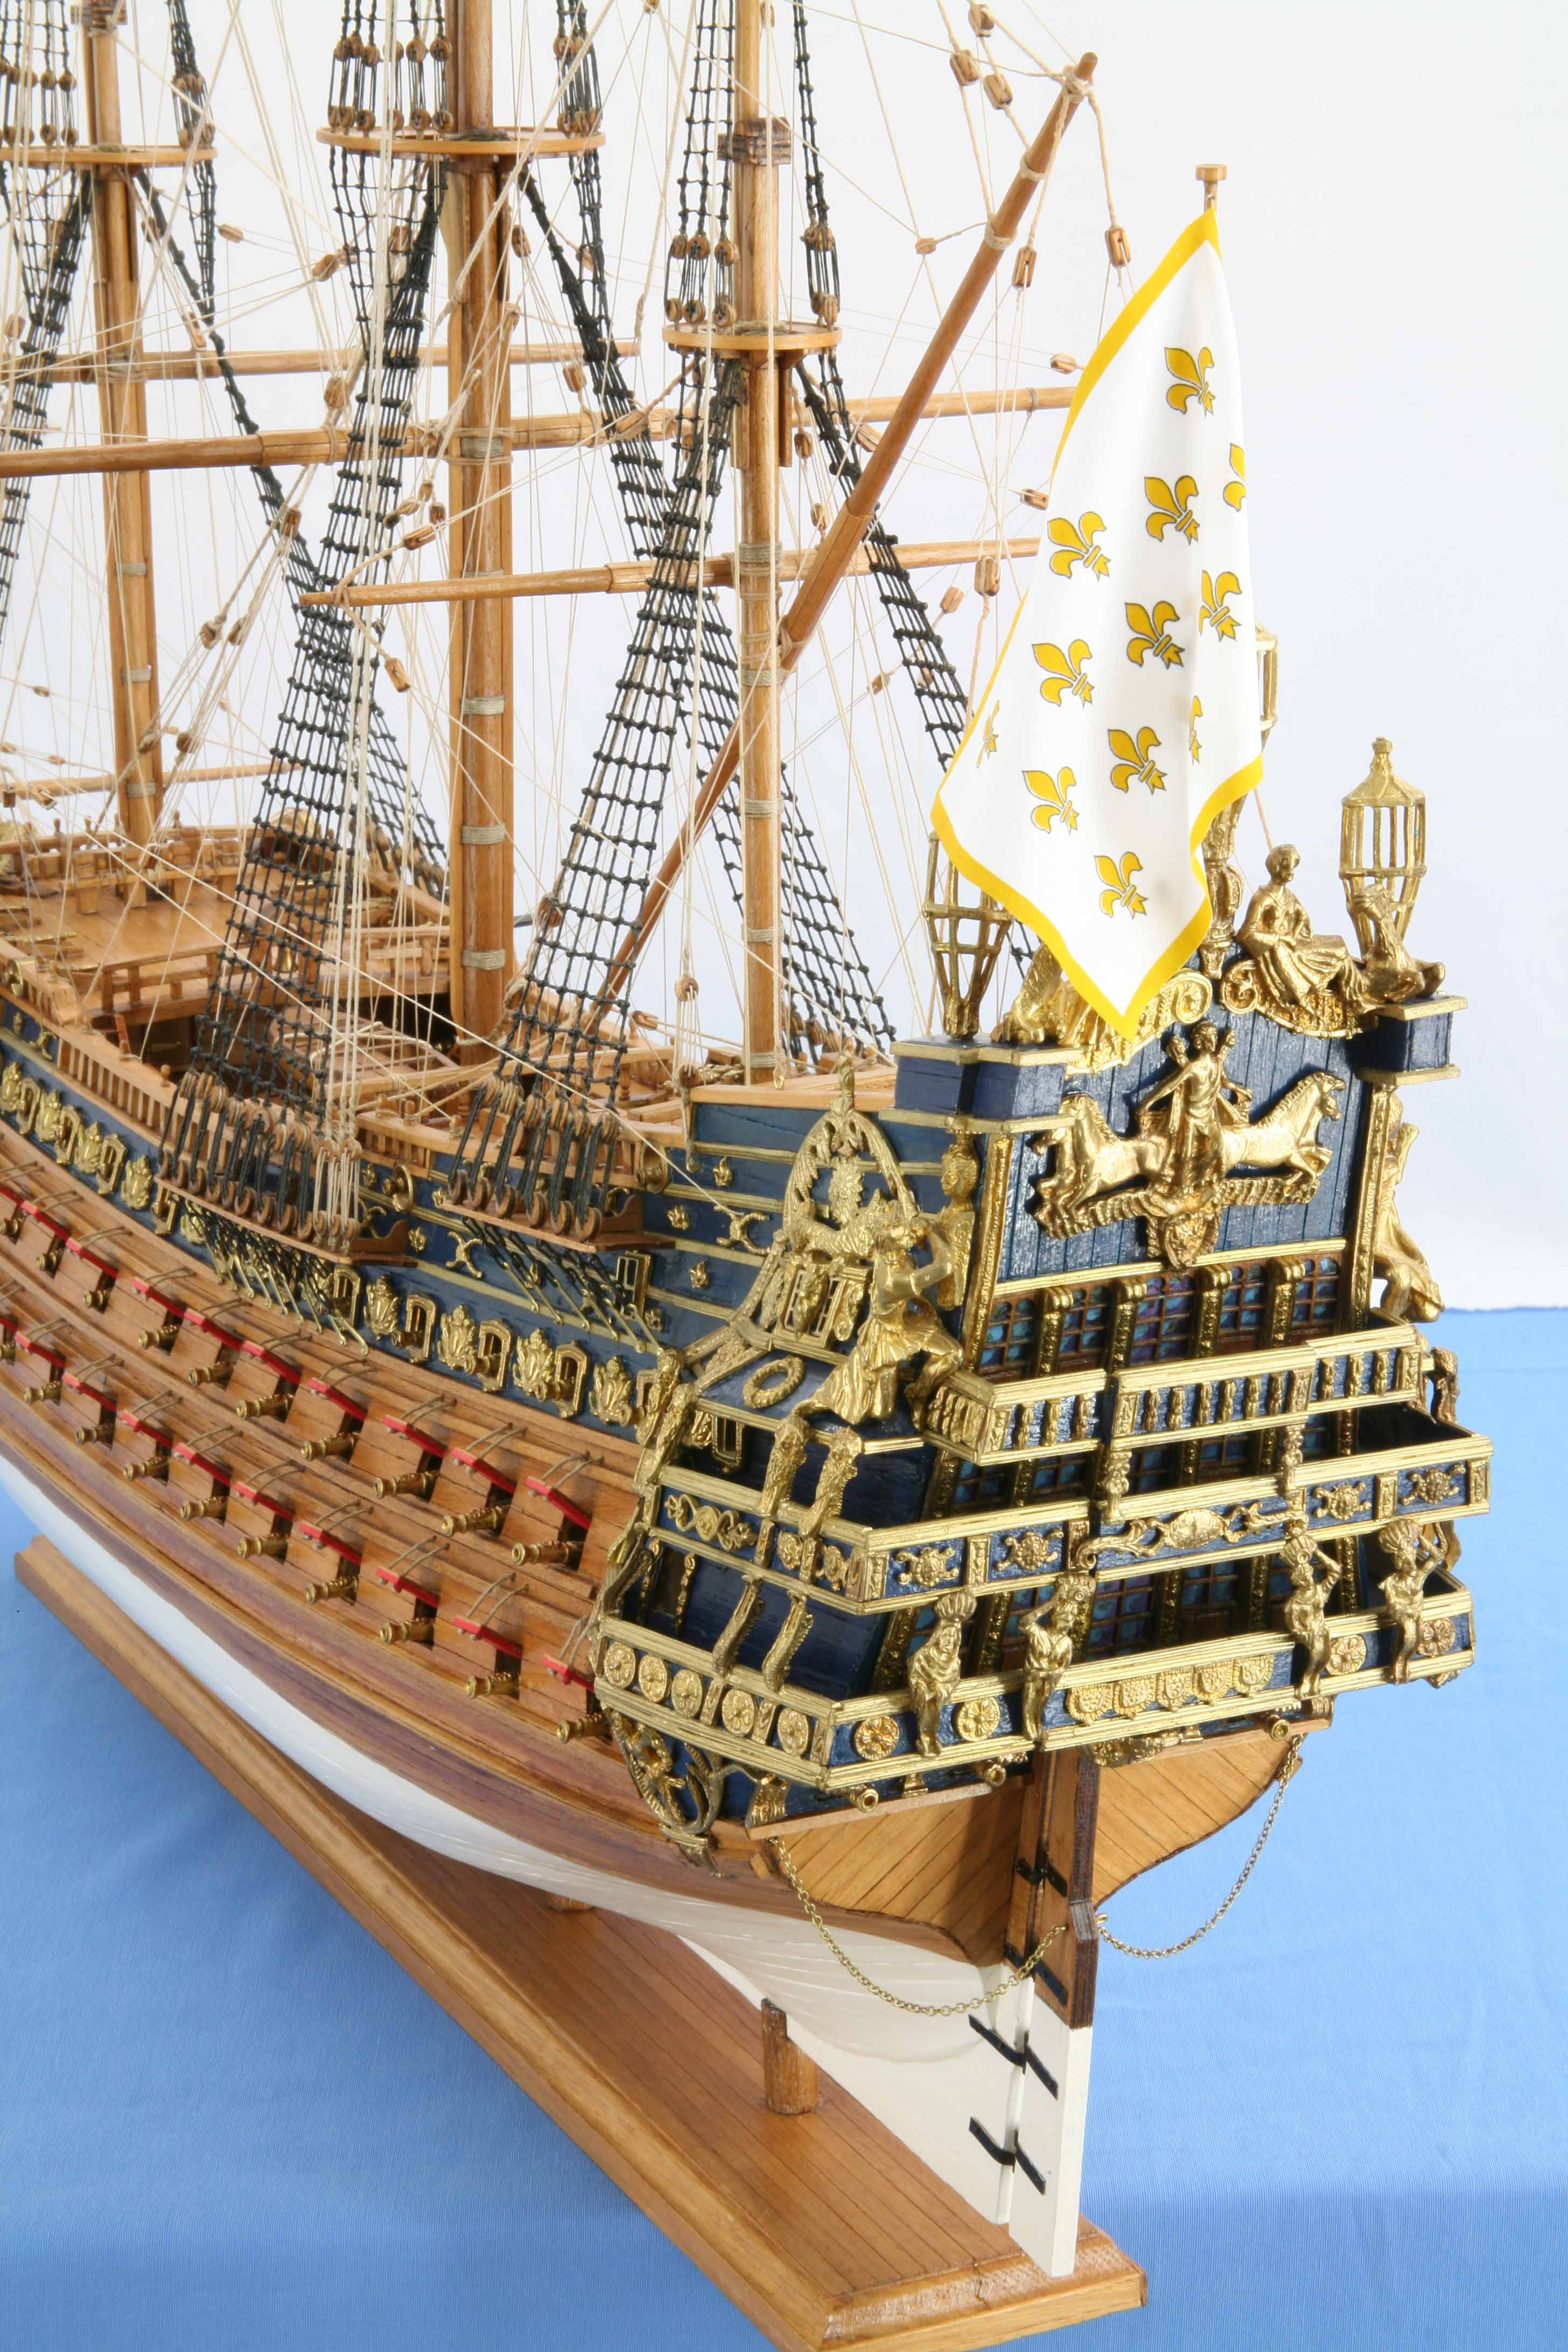 Photos ship model French Soleil Royal of 1669, views of